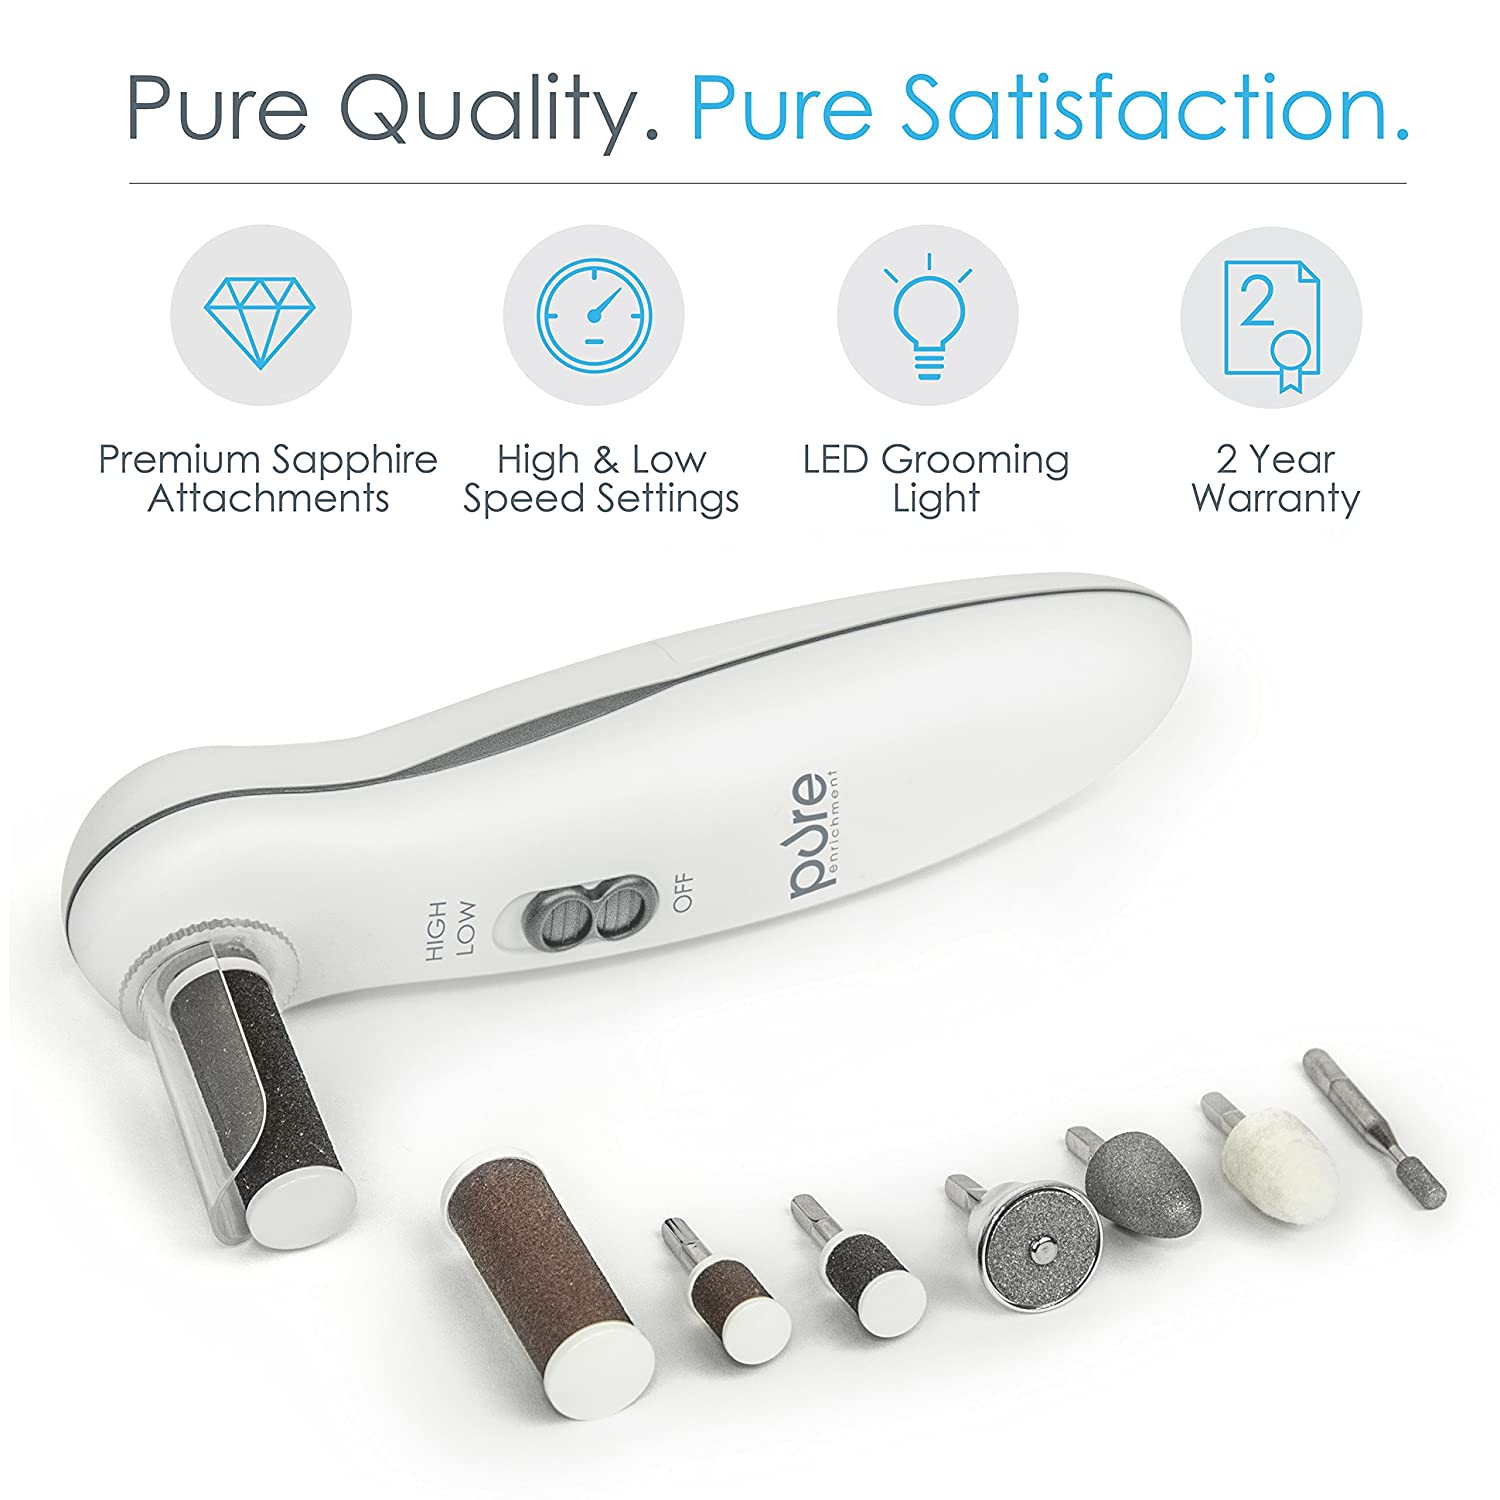 Nail polisher and callus remover nail care kit be sure to check out - Amazon Com Pure Enrichment 8 In 1 Manicure And Pedicure Kit Health Personal Care